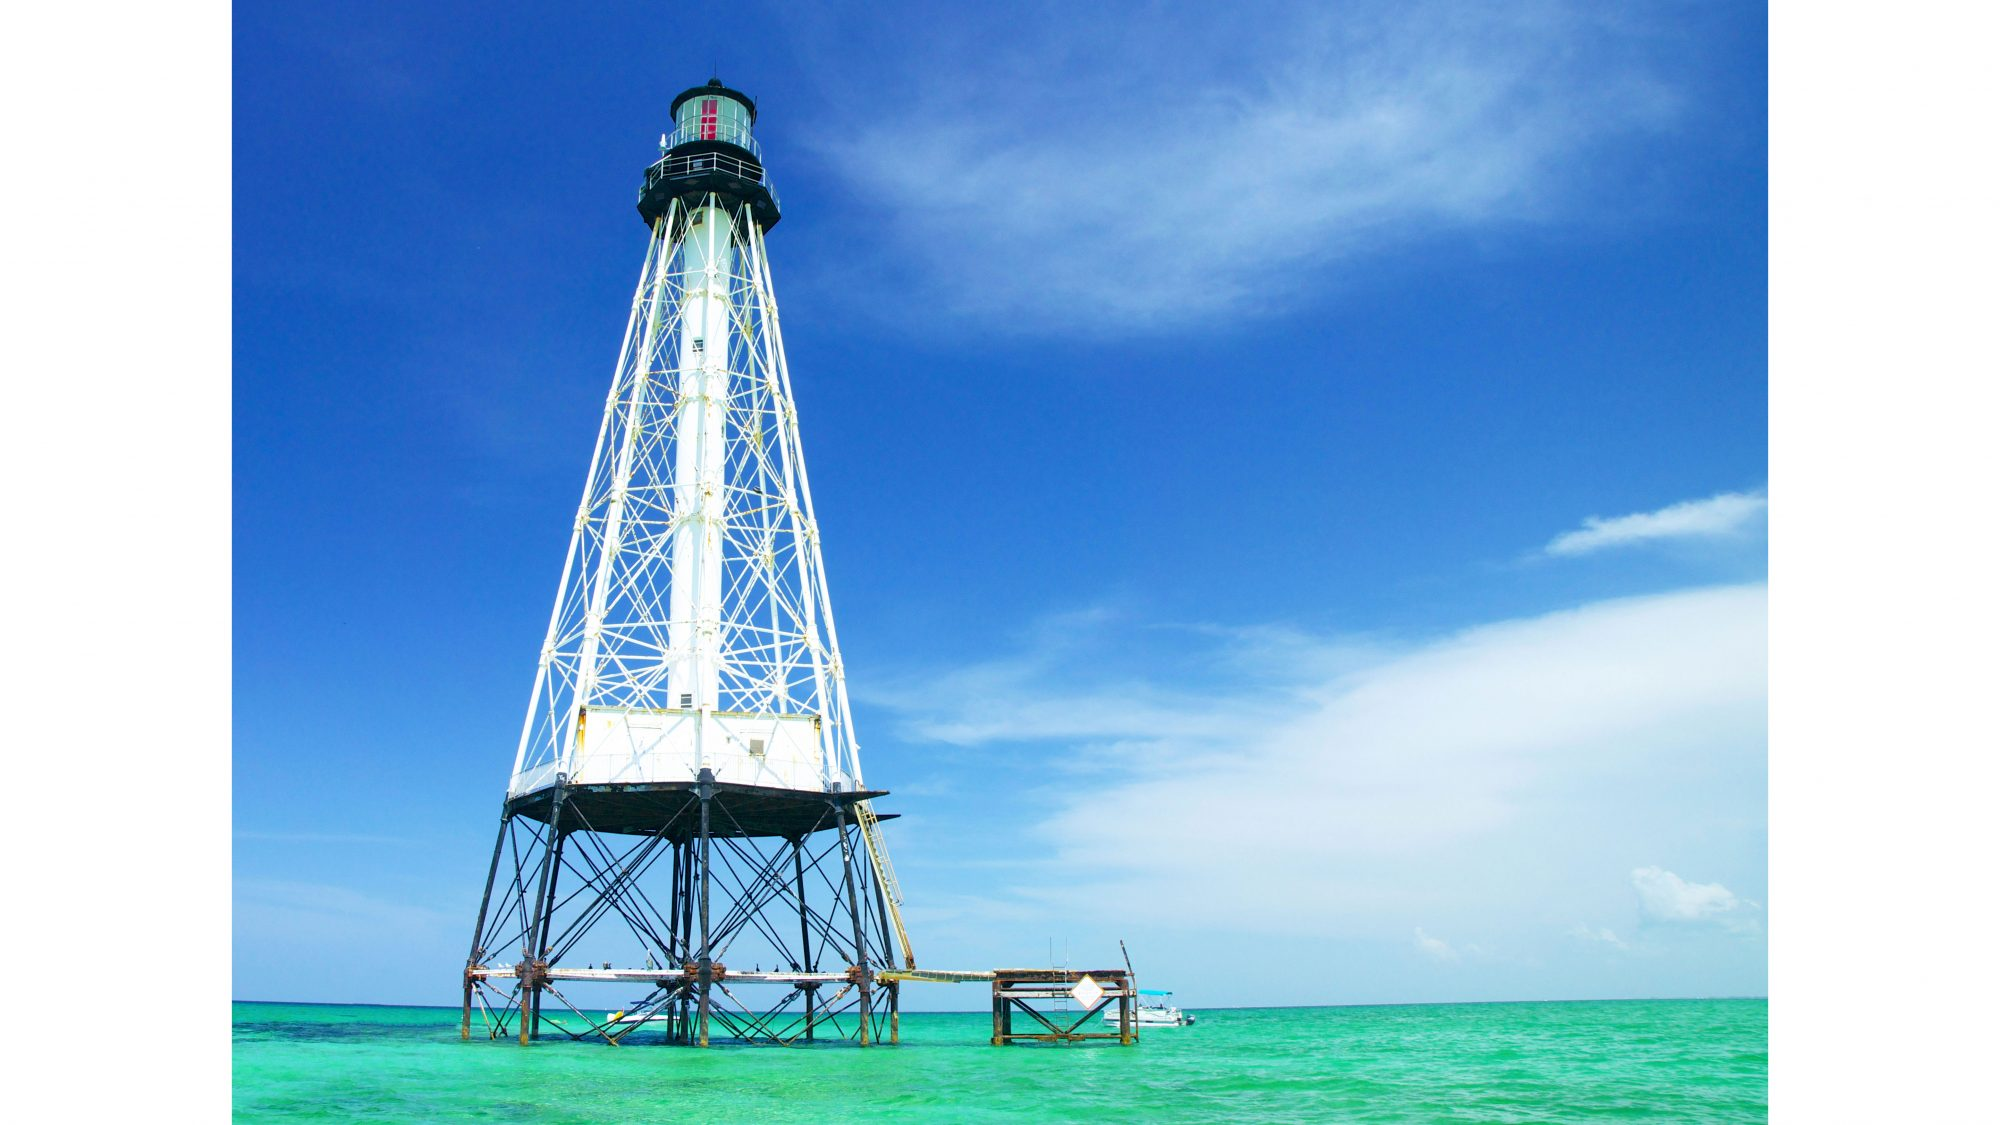 Visitors of Islamorada are just a charter boat ride and three watery miles from the historic Alligator Reef Lighthouse, where snorkelers can find hundreds of species of marine animals, including parrotfish, barracuda, rays, and turtles in an average depth of 20 feet.